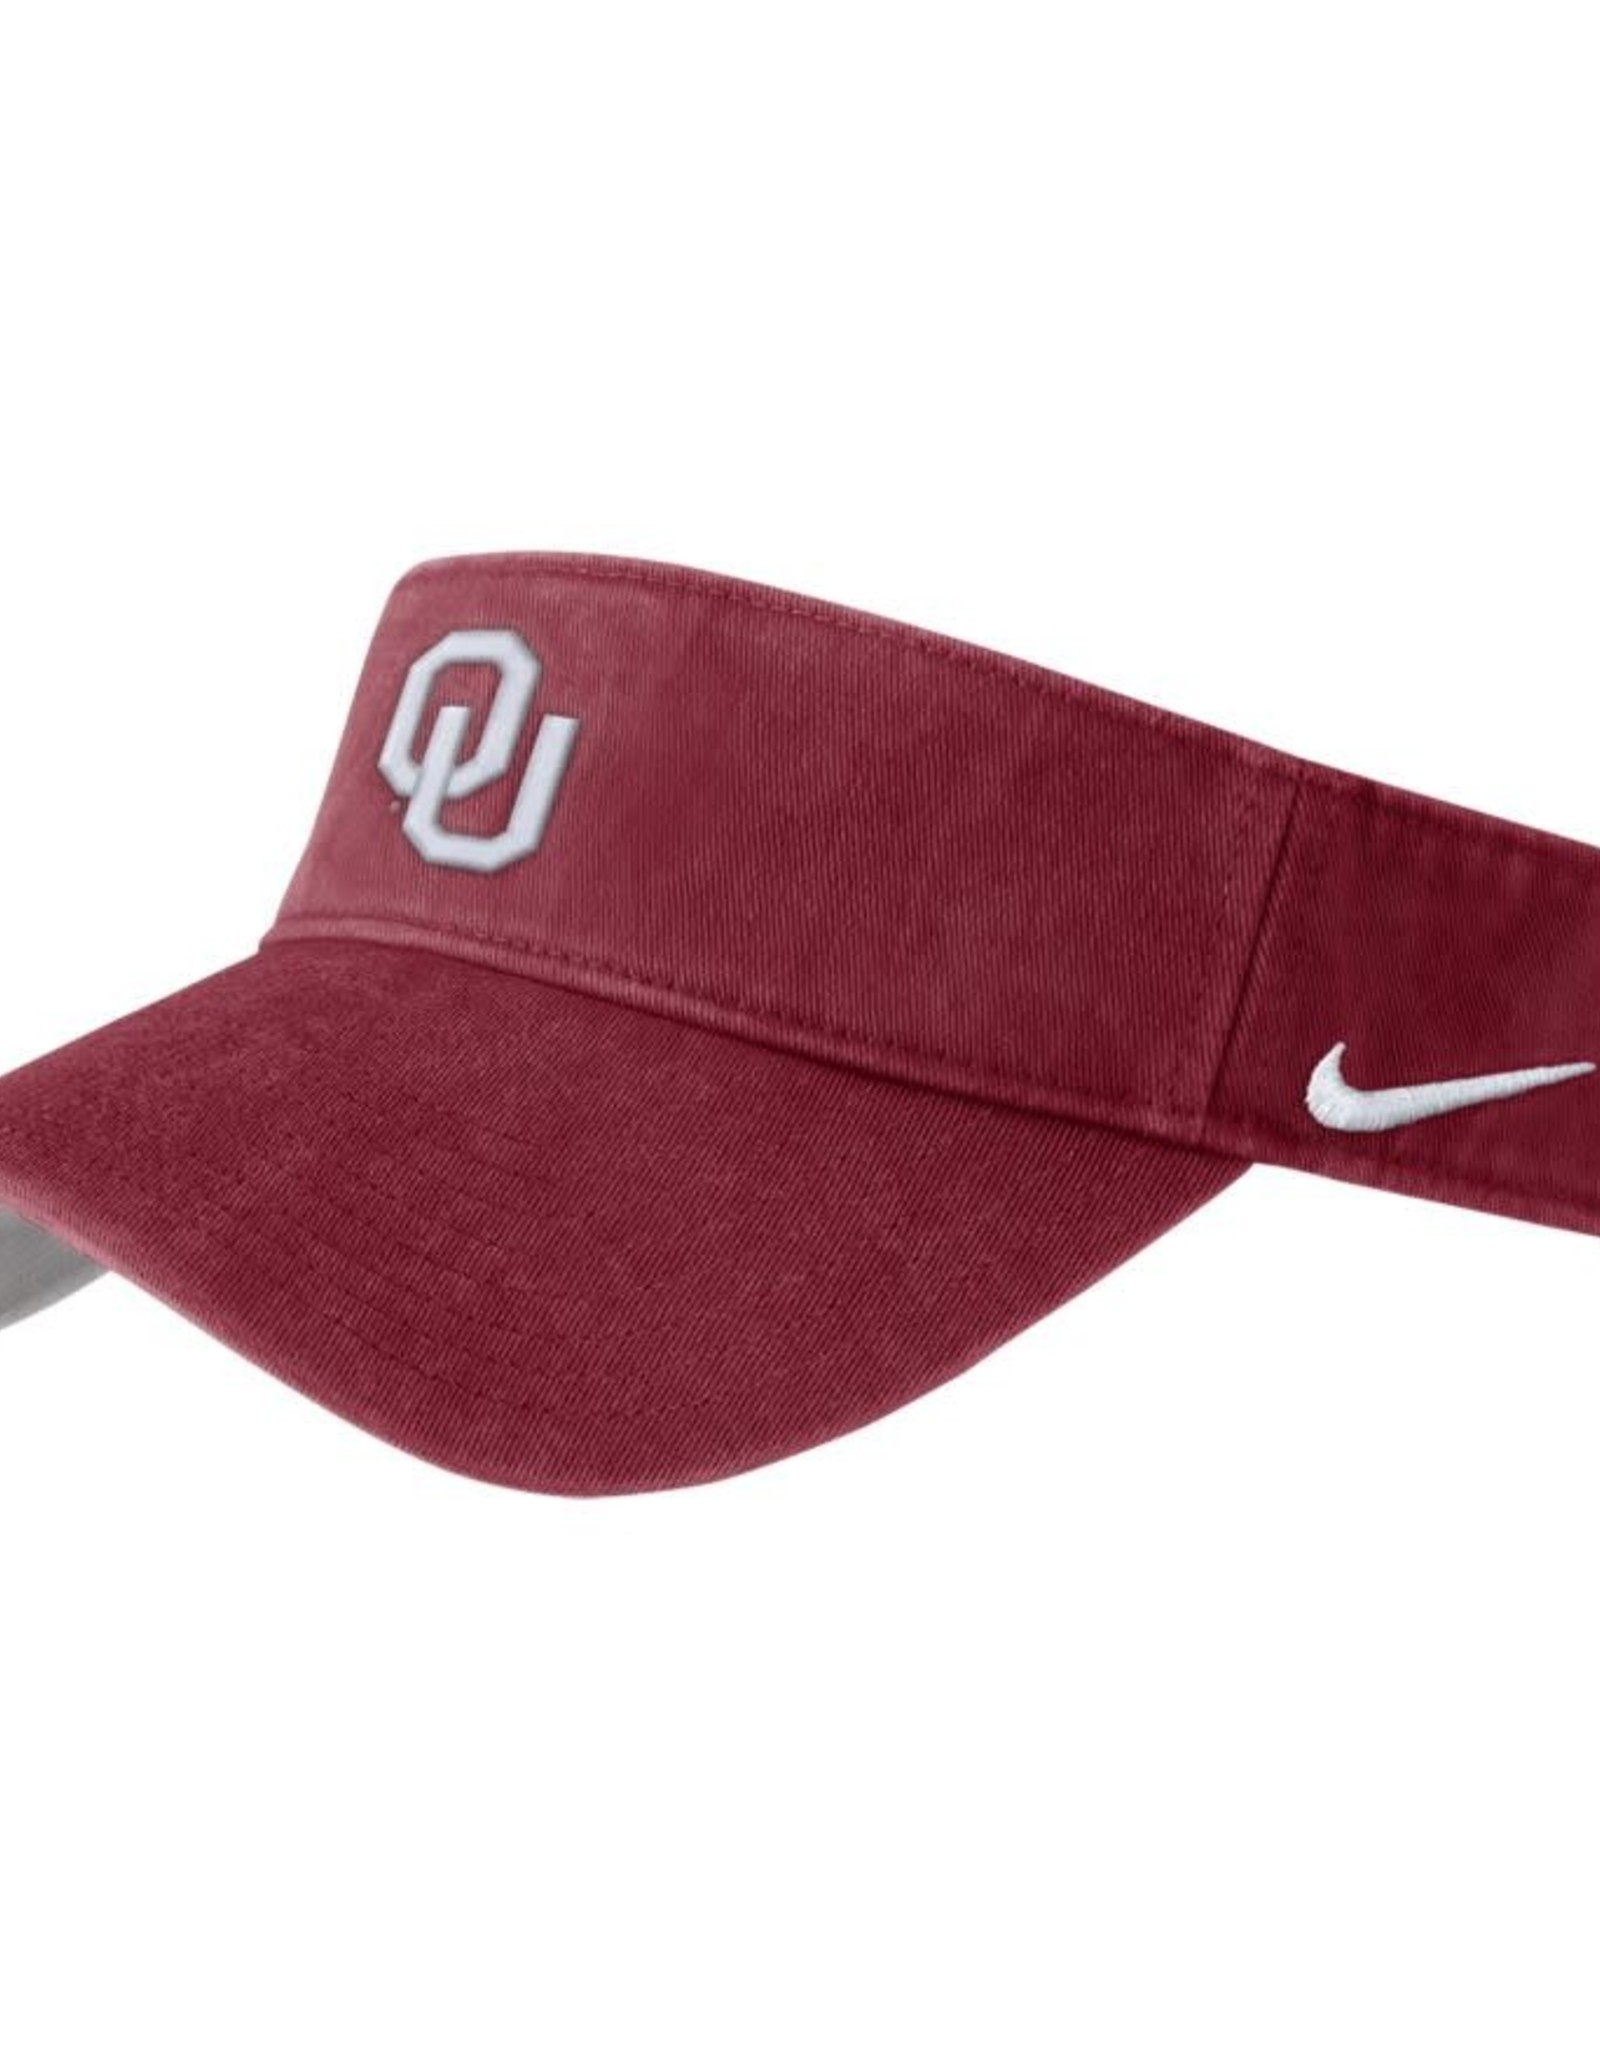 Nike Men's Nike Pigment Washed Visor Crimson w/ White OU